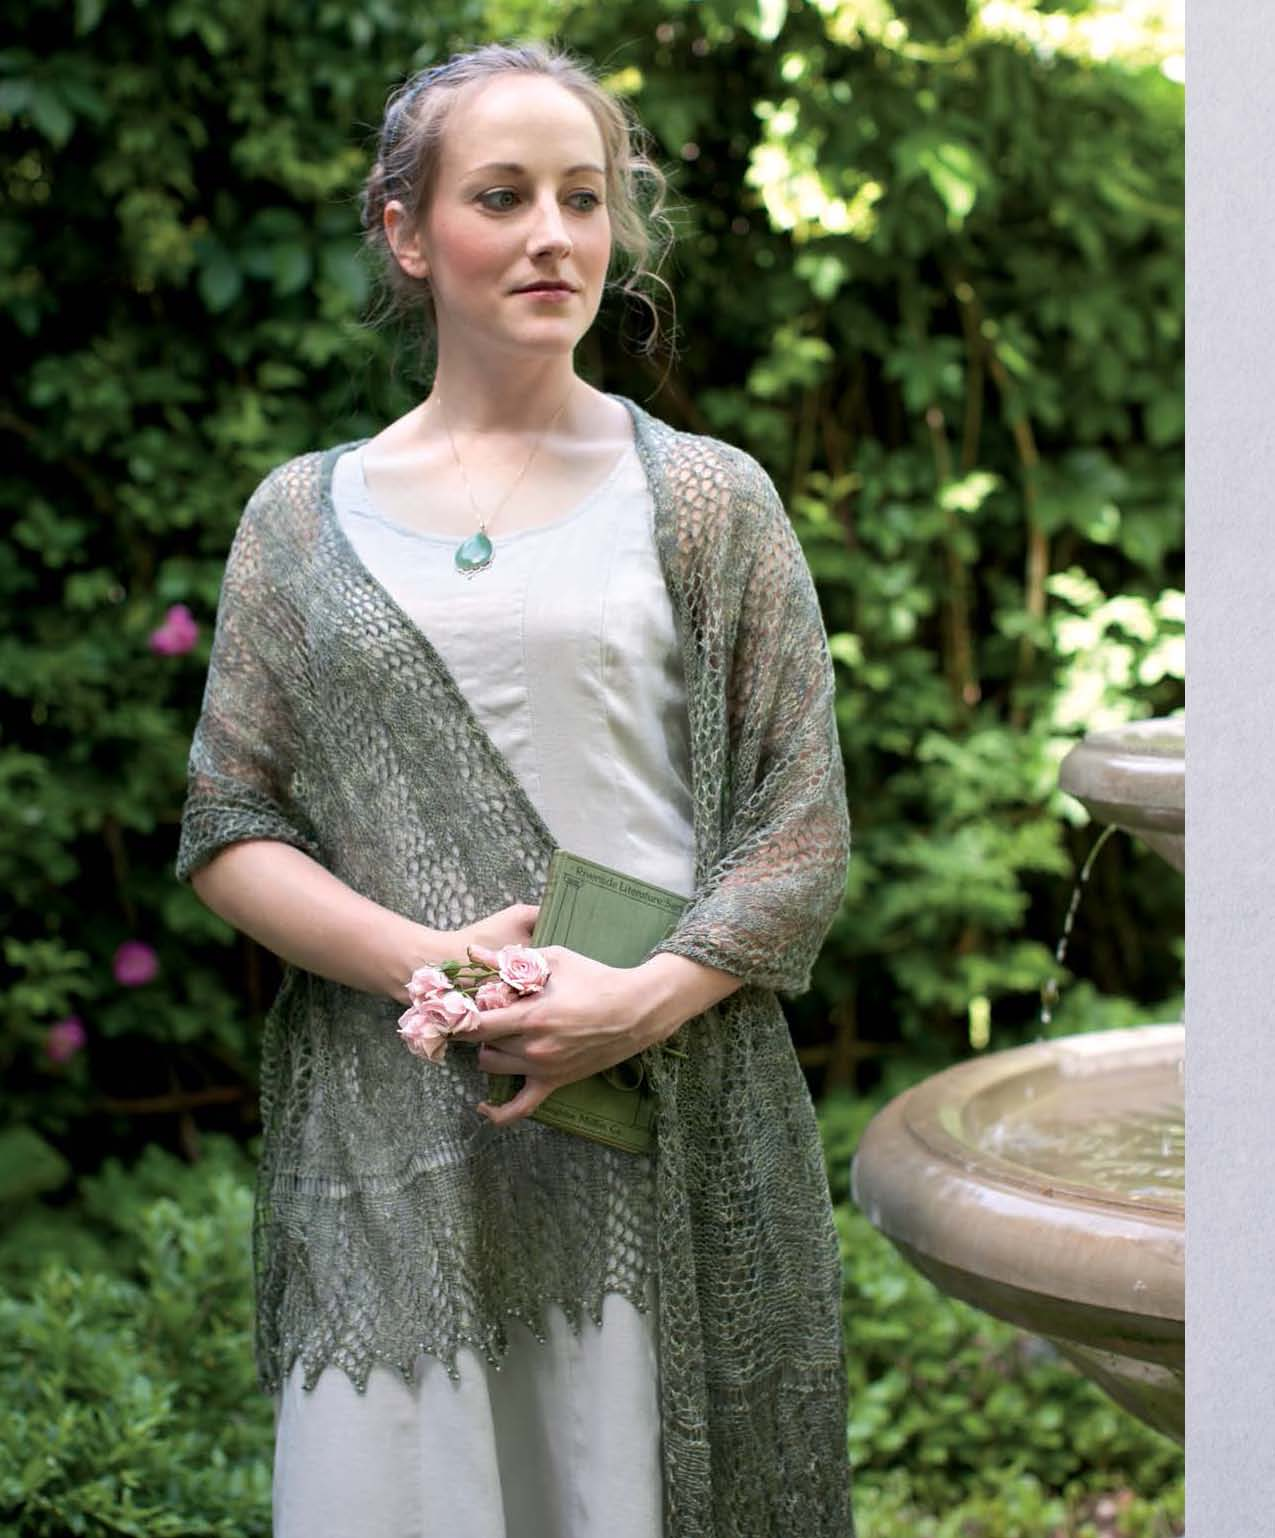 The Best of Jane Austen Knits - Georgiana Darcy's Fancy Shawl beauty shot